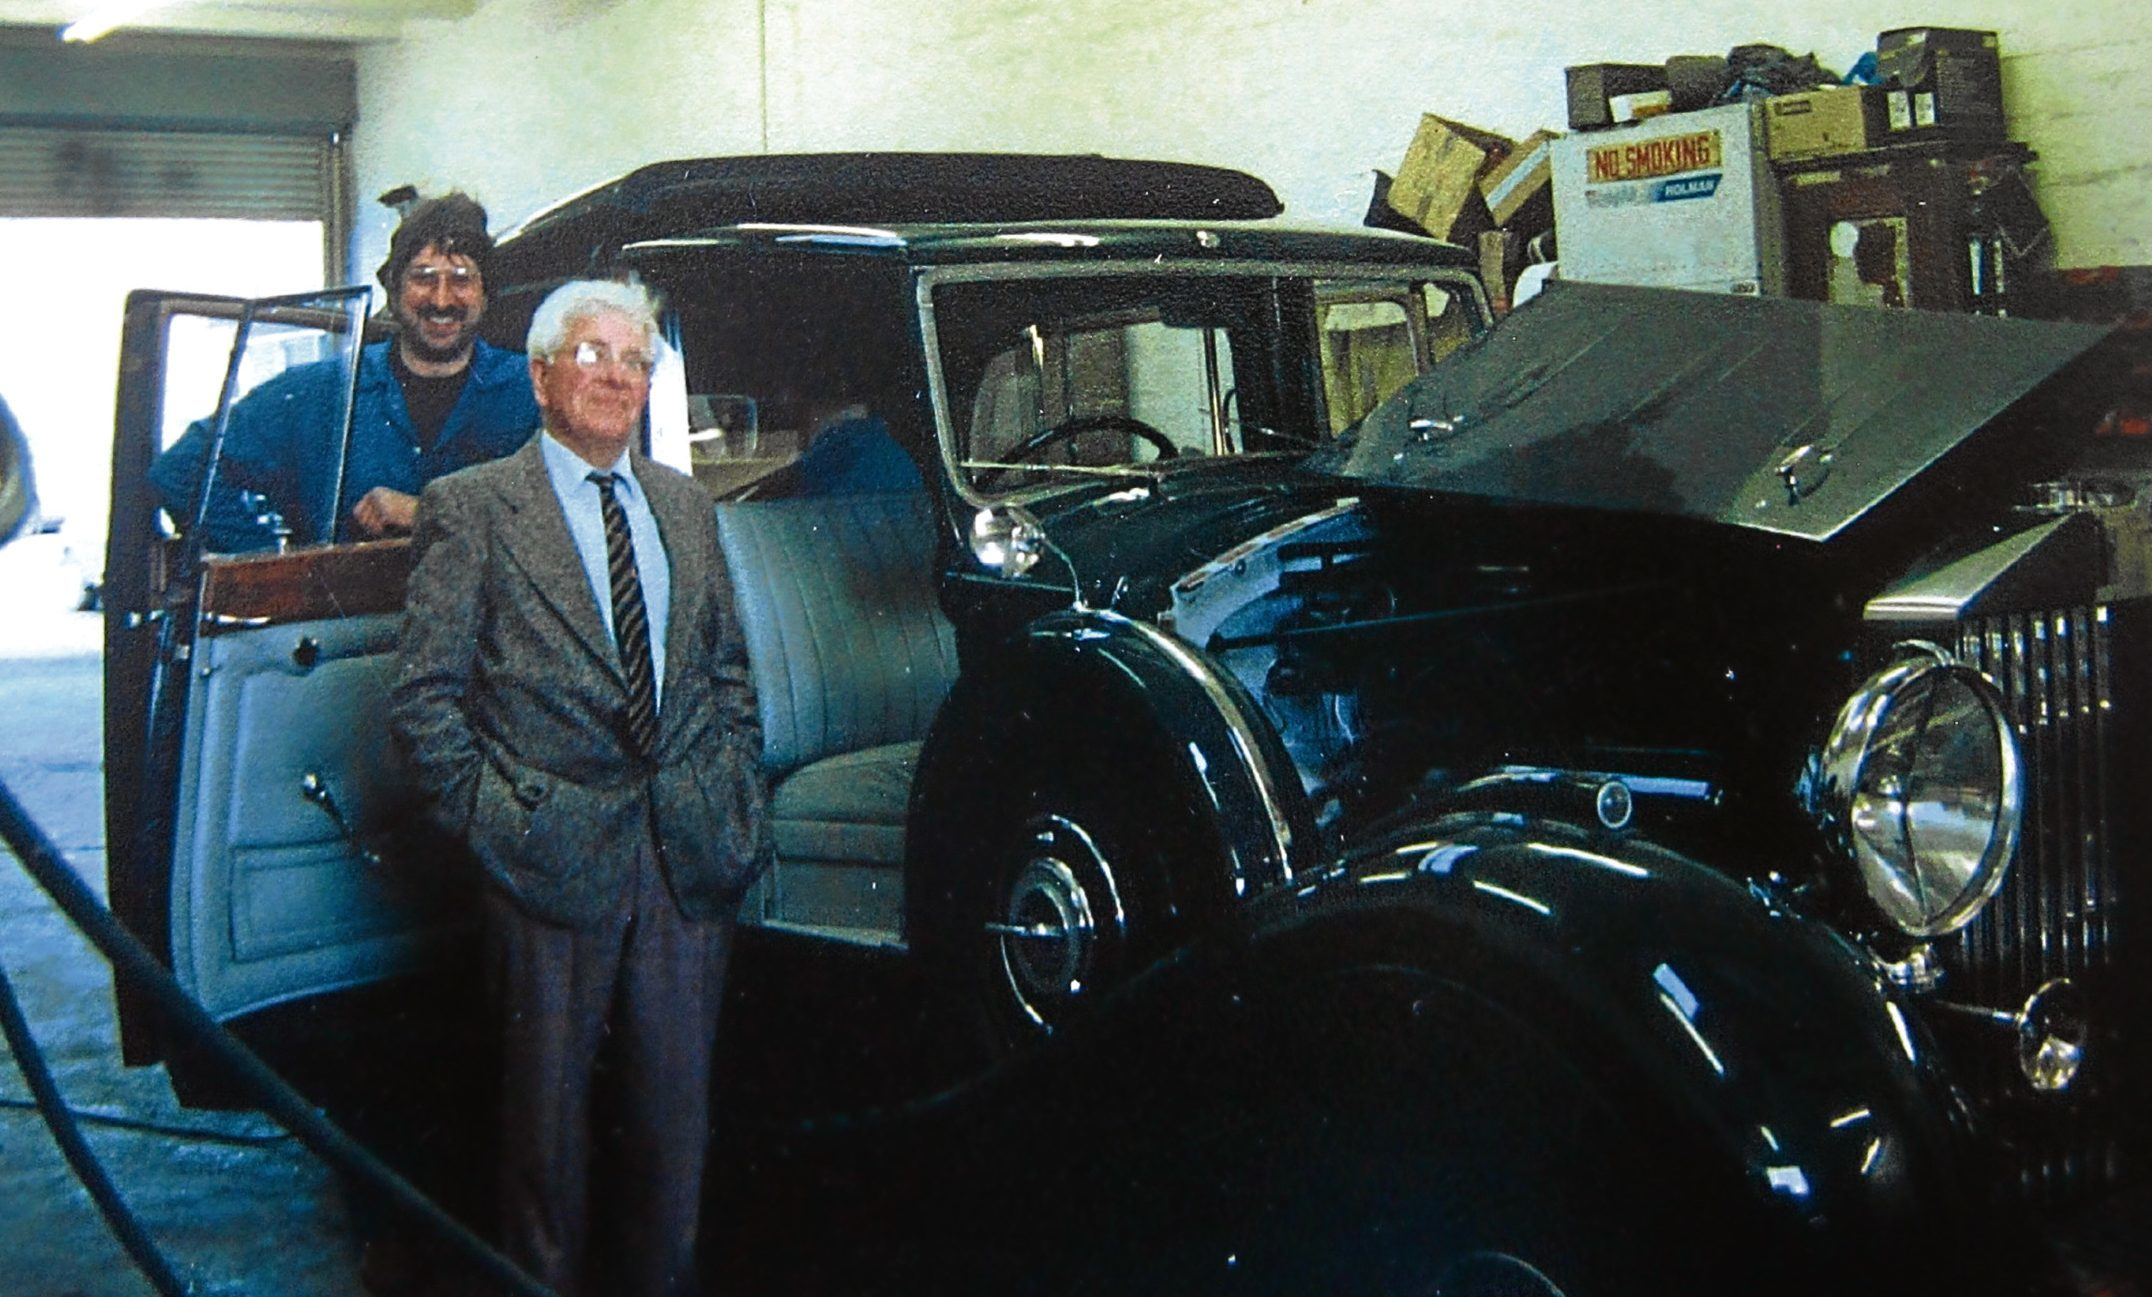 Charles McGilchrist with Brian Clark of Clark Hardie garage in Lochee, working on restoring a Packard classic car owned by Sir James Cayzer.